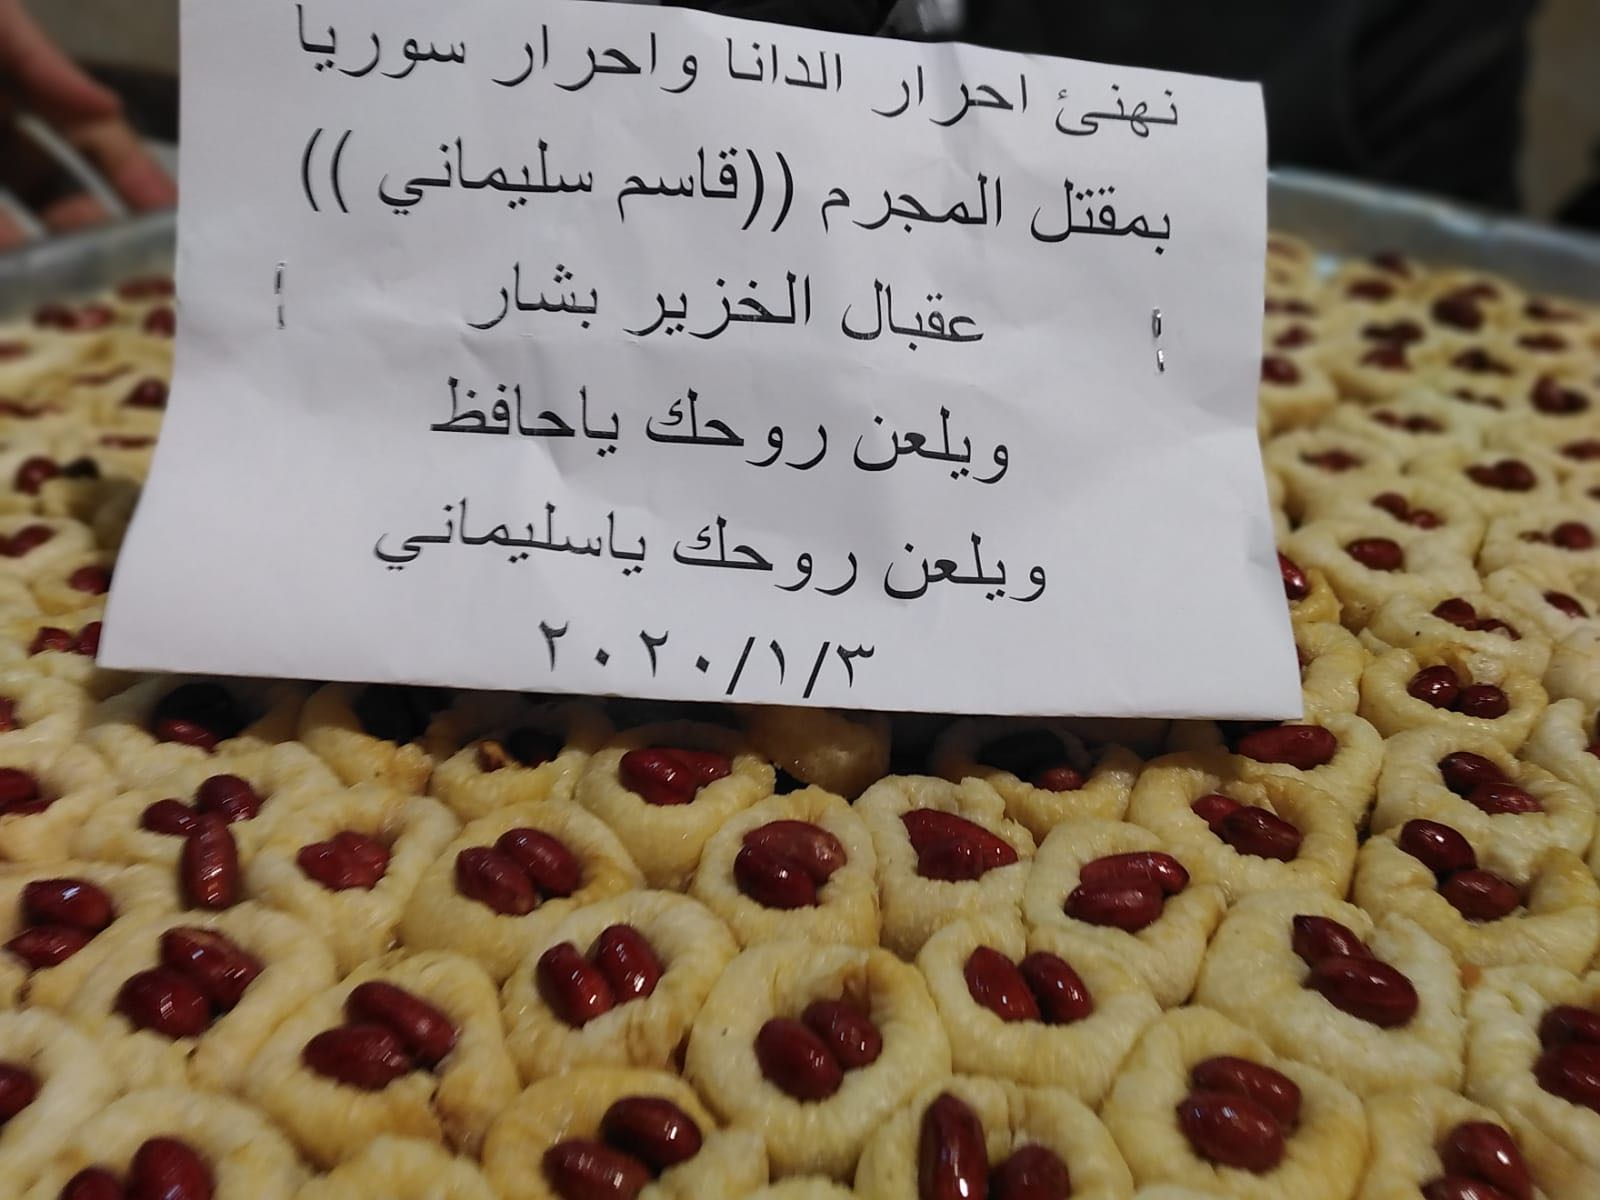 Syrians in Idlib eat sweets to celebrate the news of Qassem Soleimani's death